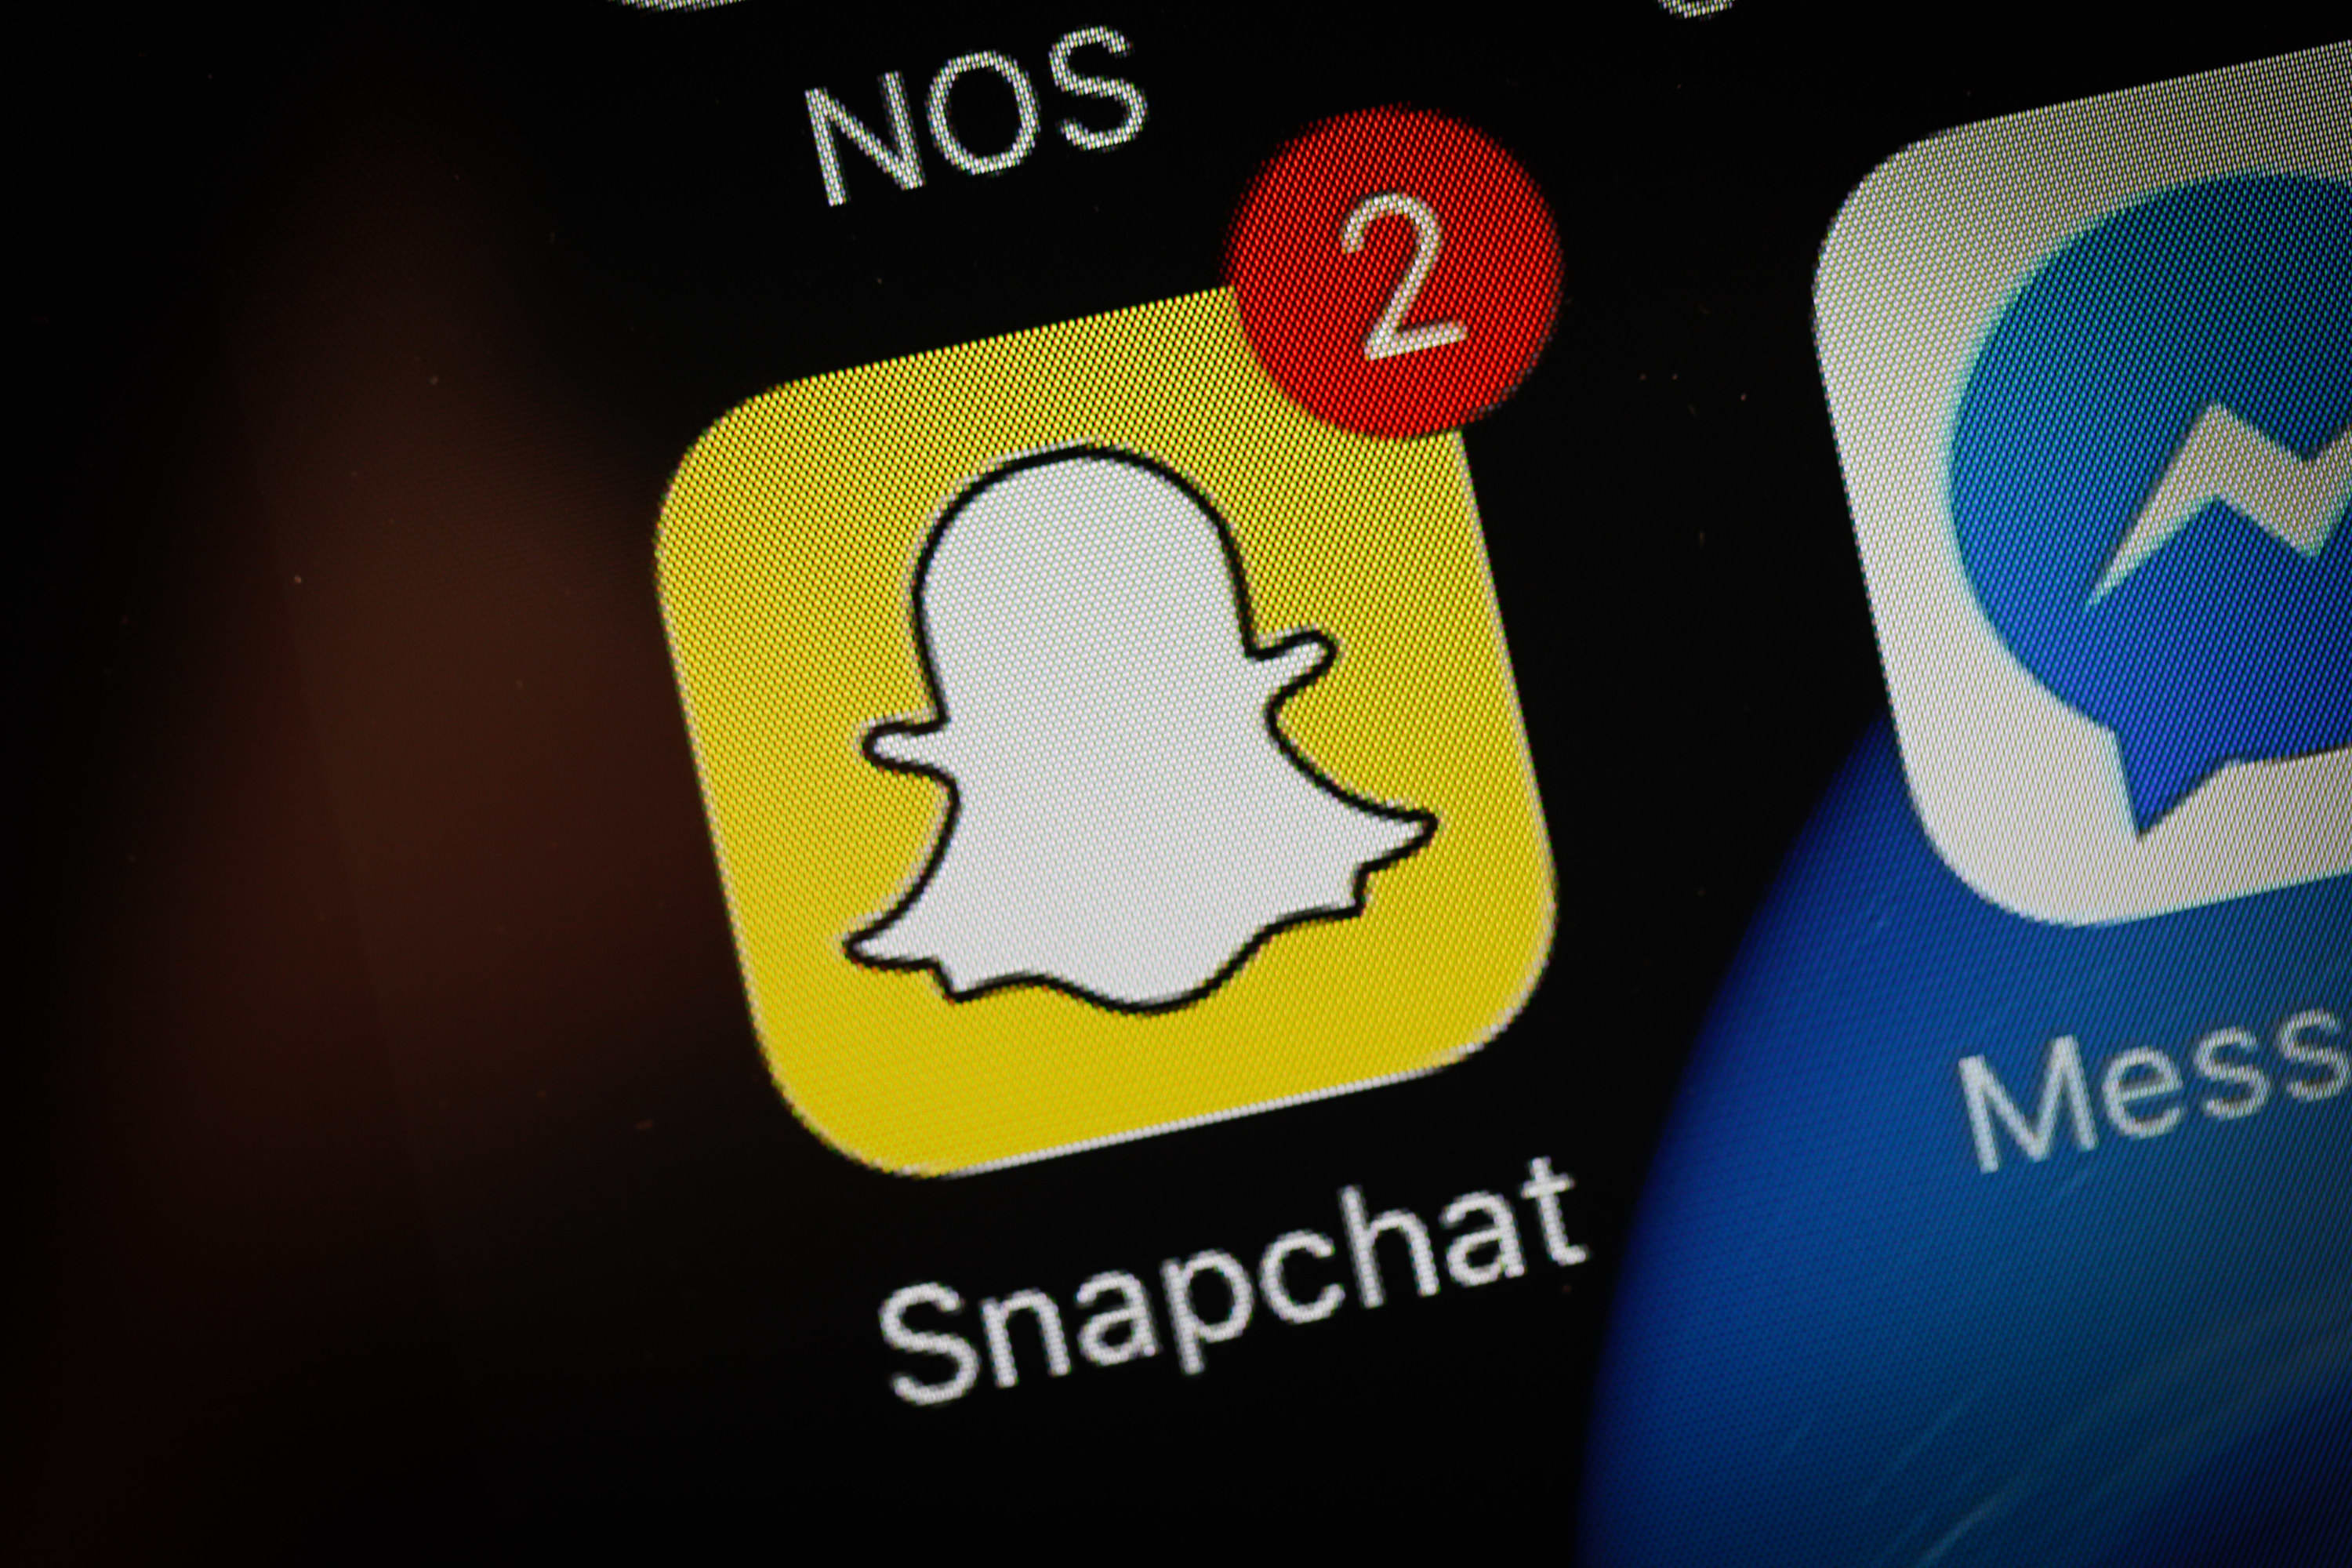 The Snapchat app on a phone screen